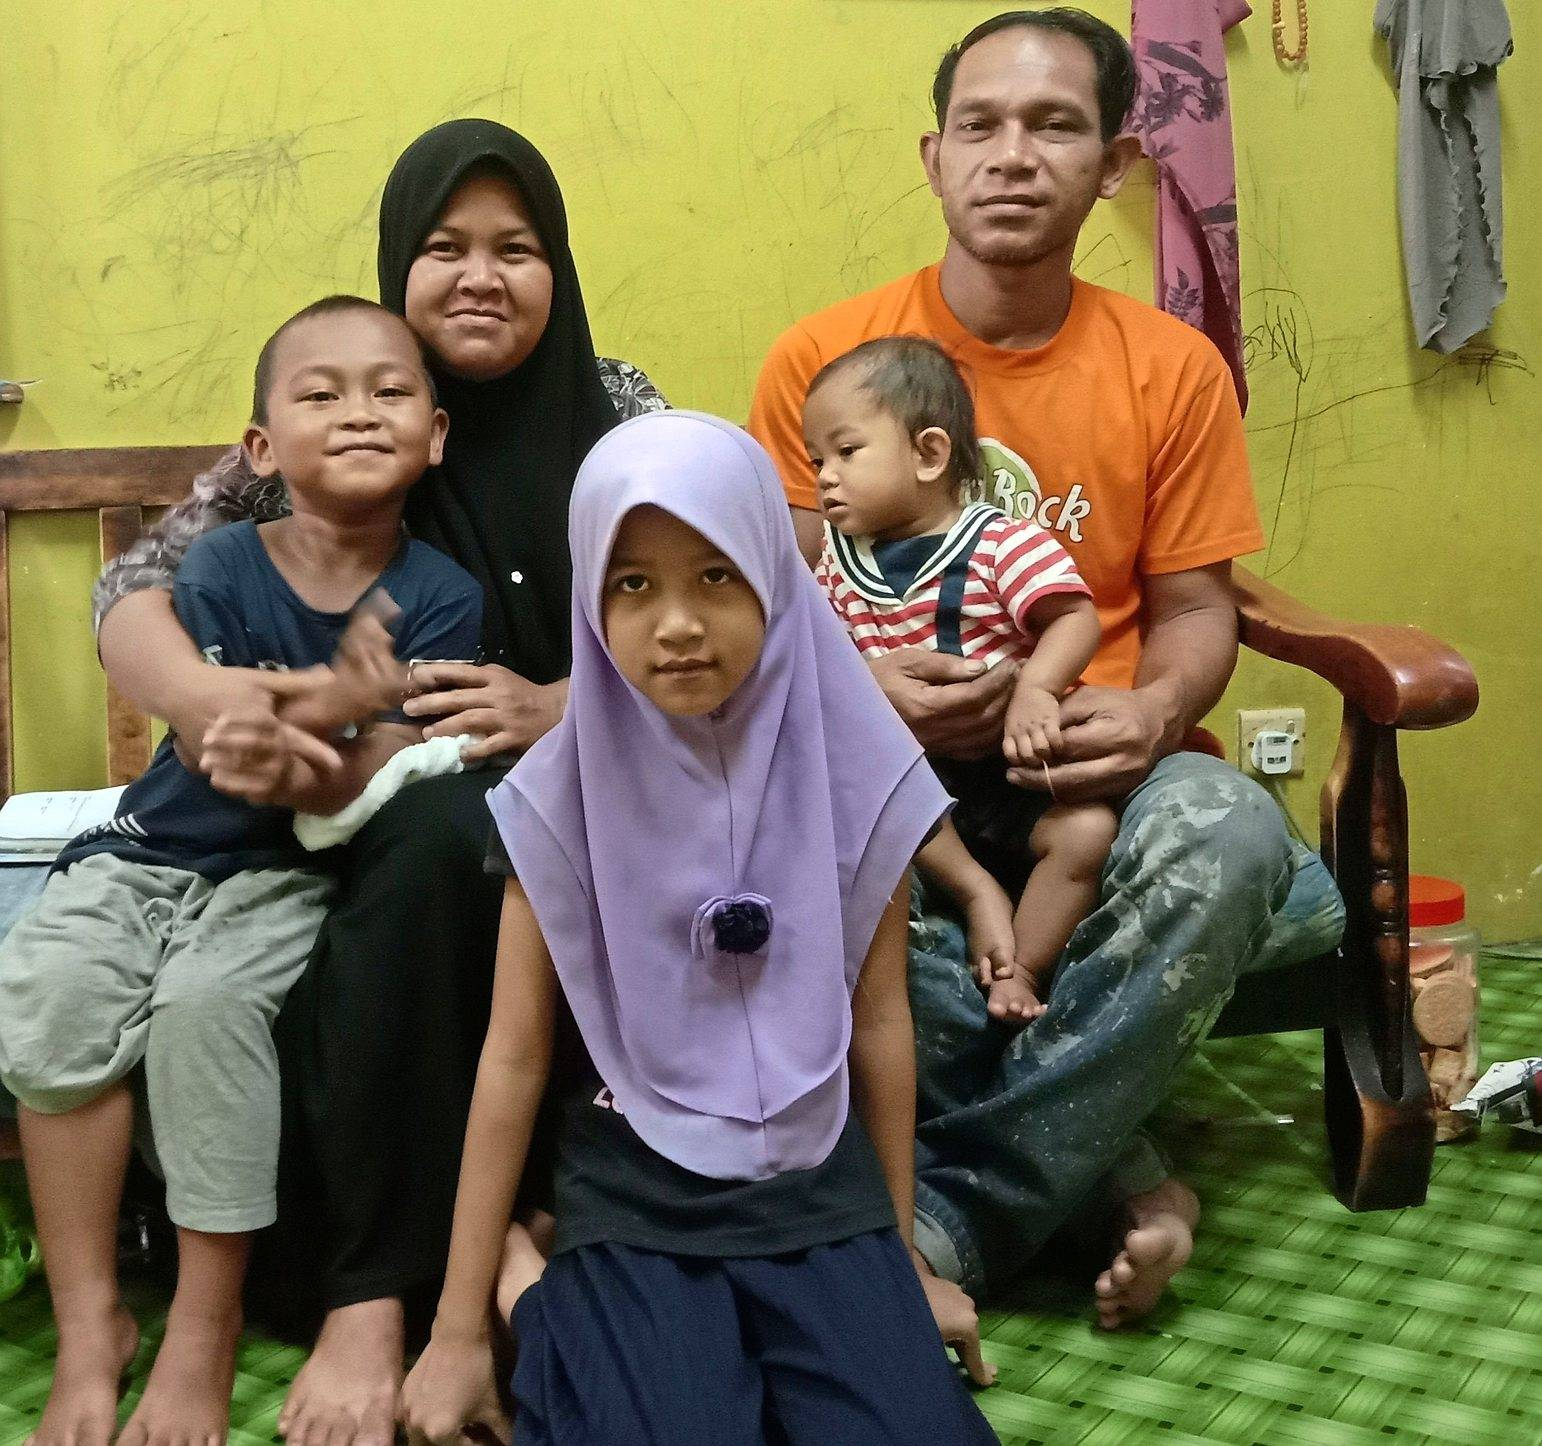 The surgery will enable Nur Syiffa (front) to lead a normal life.